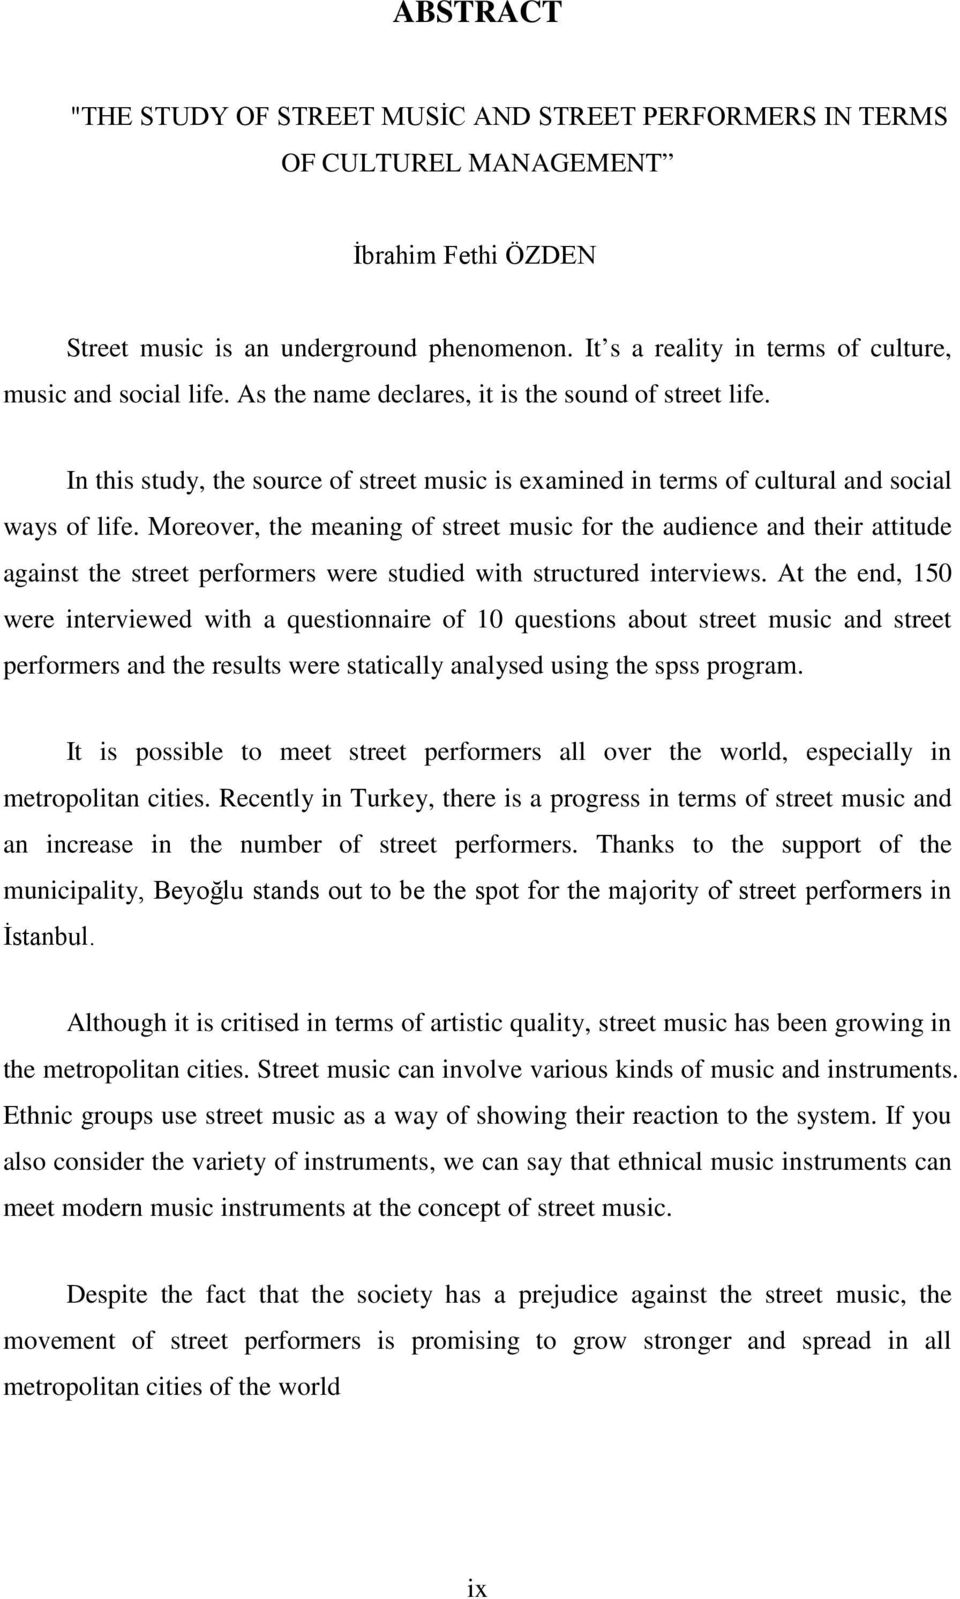 In this study, the source of street music is examined in terms of cultural and social ways of life.